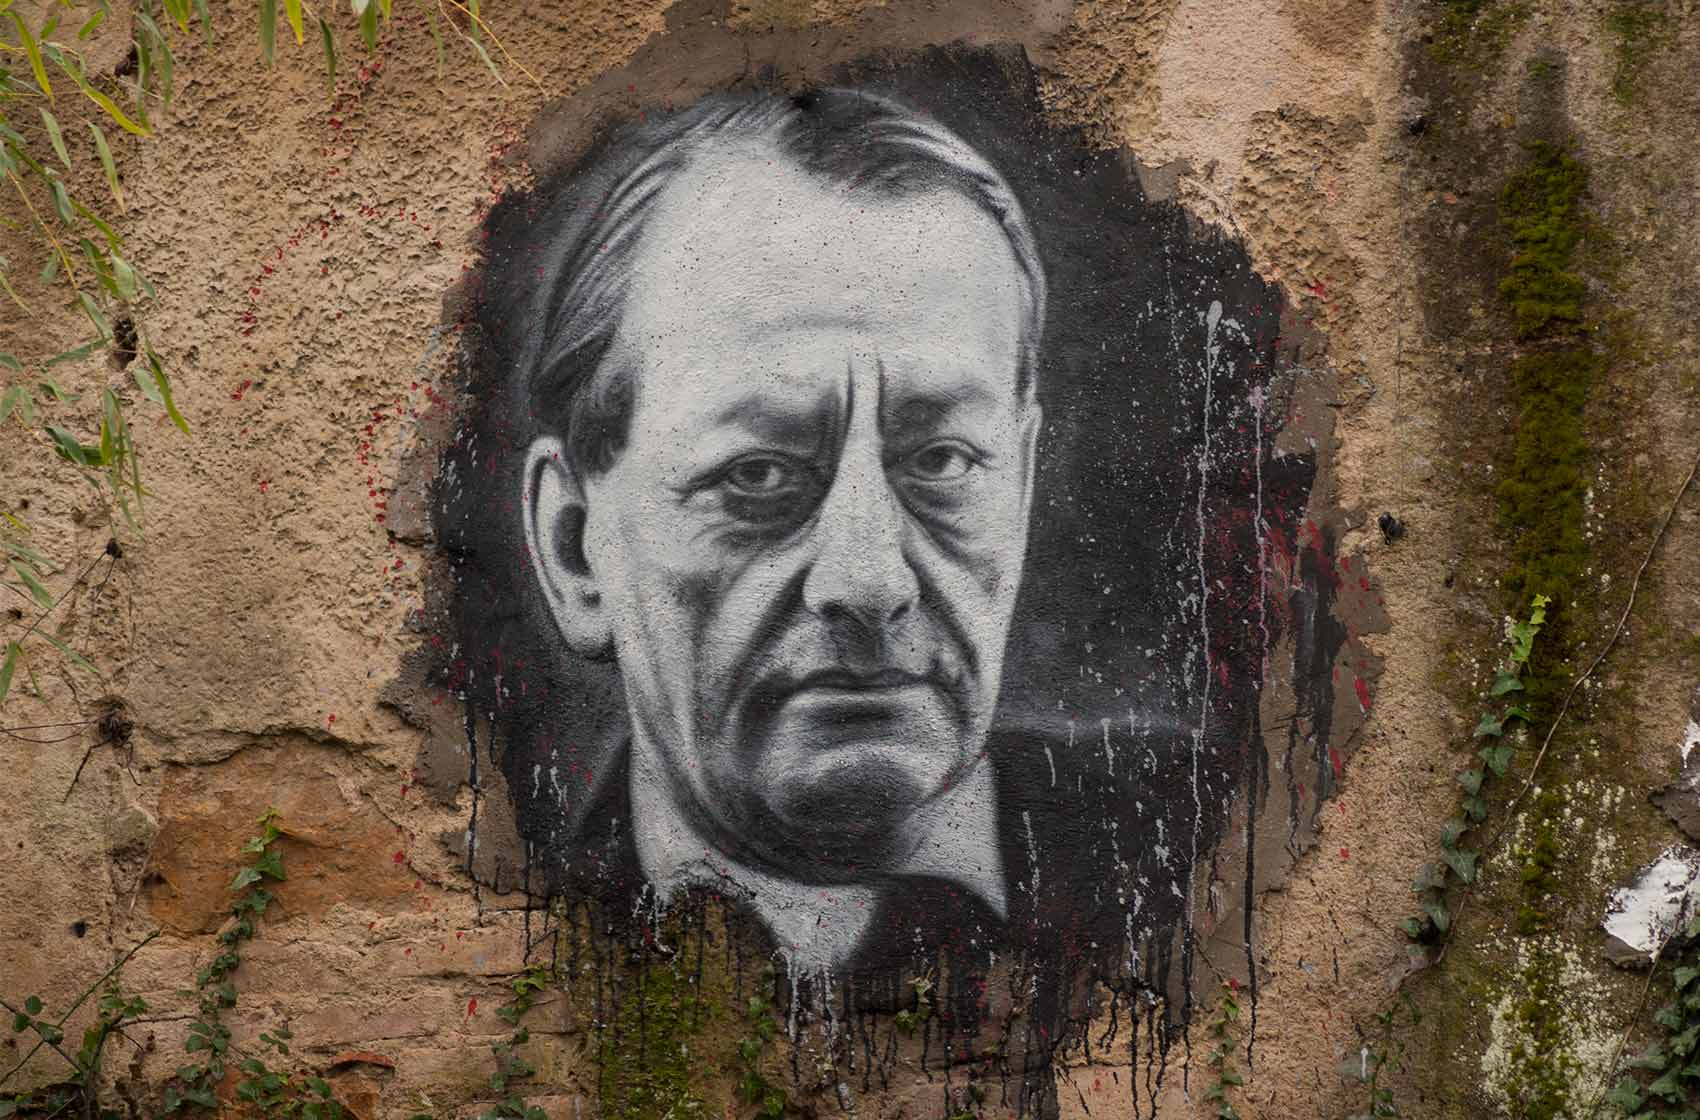 André Malraux, painted portrait / Thierry Ehrmann CC BY 2.0